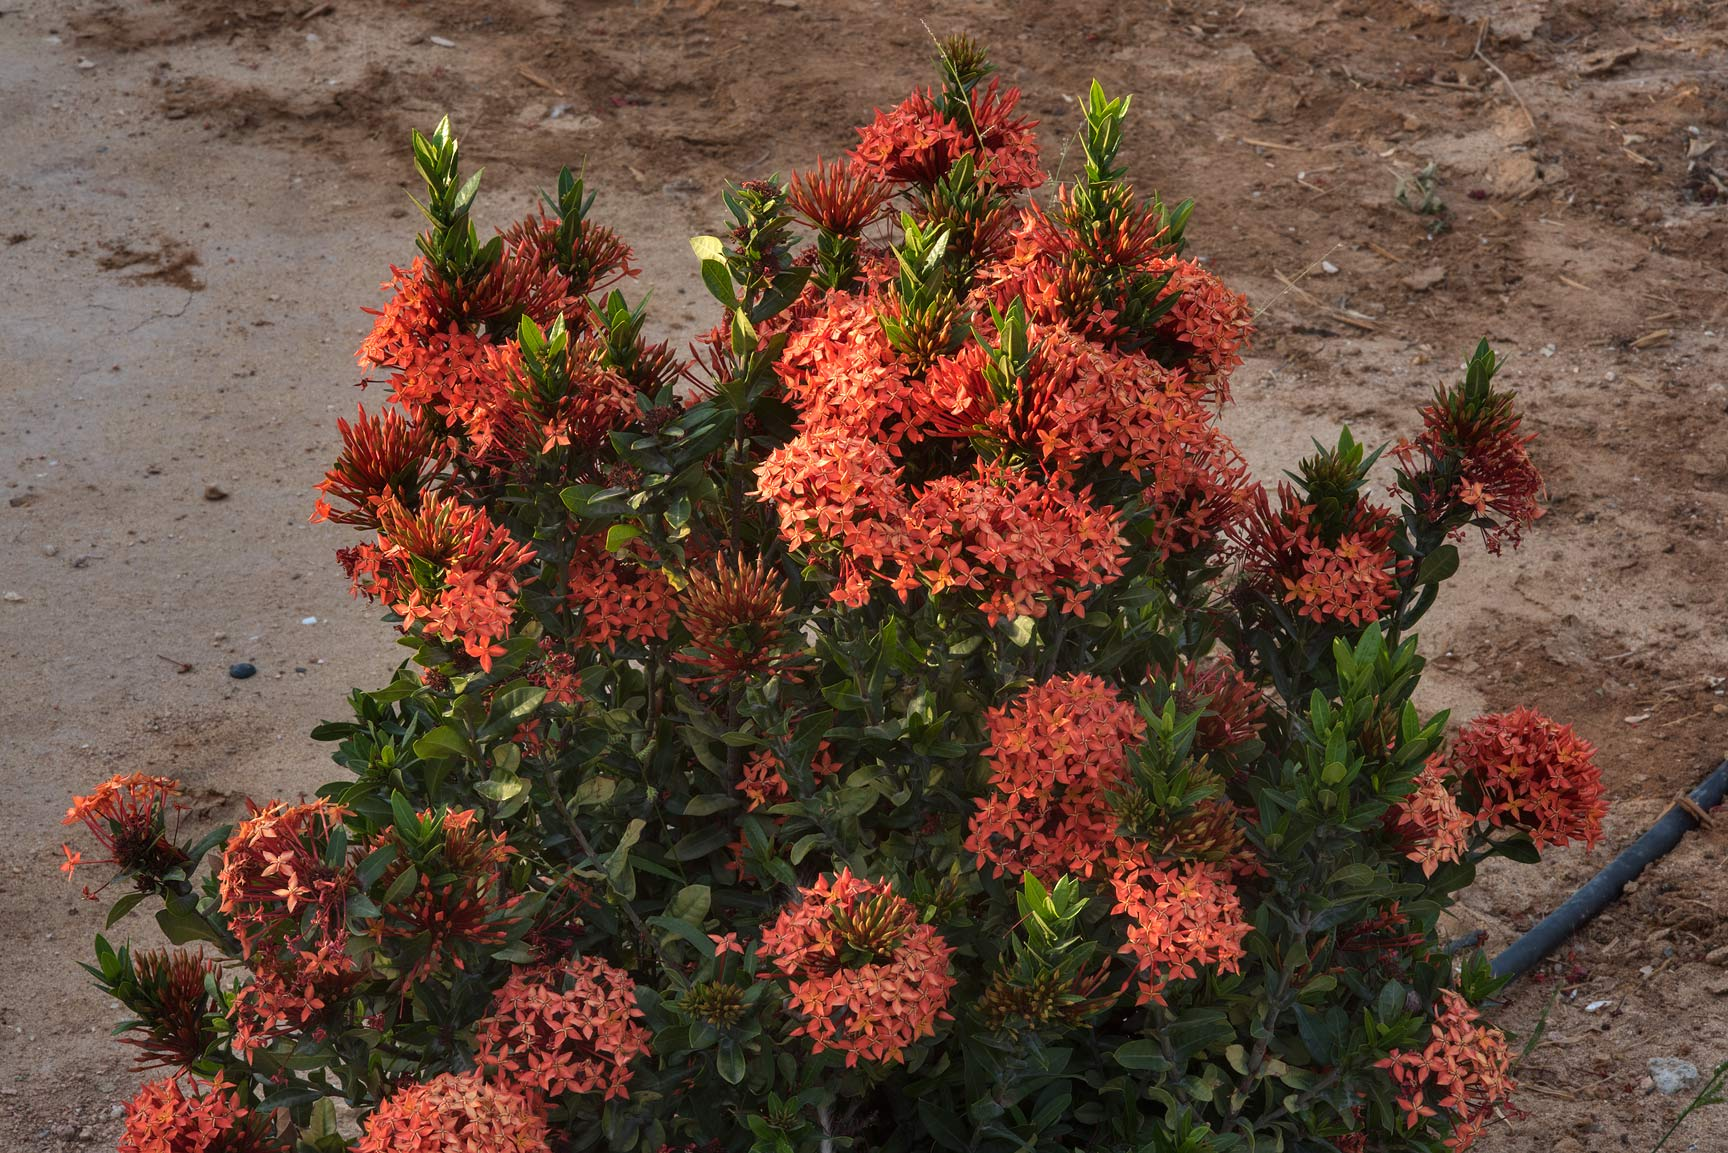 Jungle geranium (Ixora coccinea) planted in a...near a corner with Onaiza. Doha, Qatar